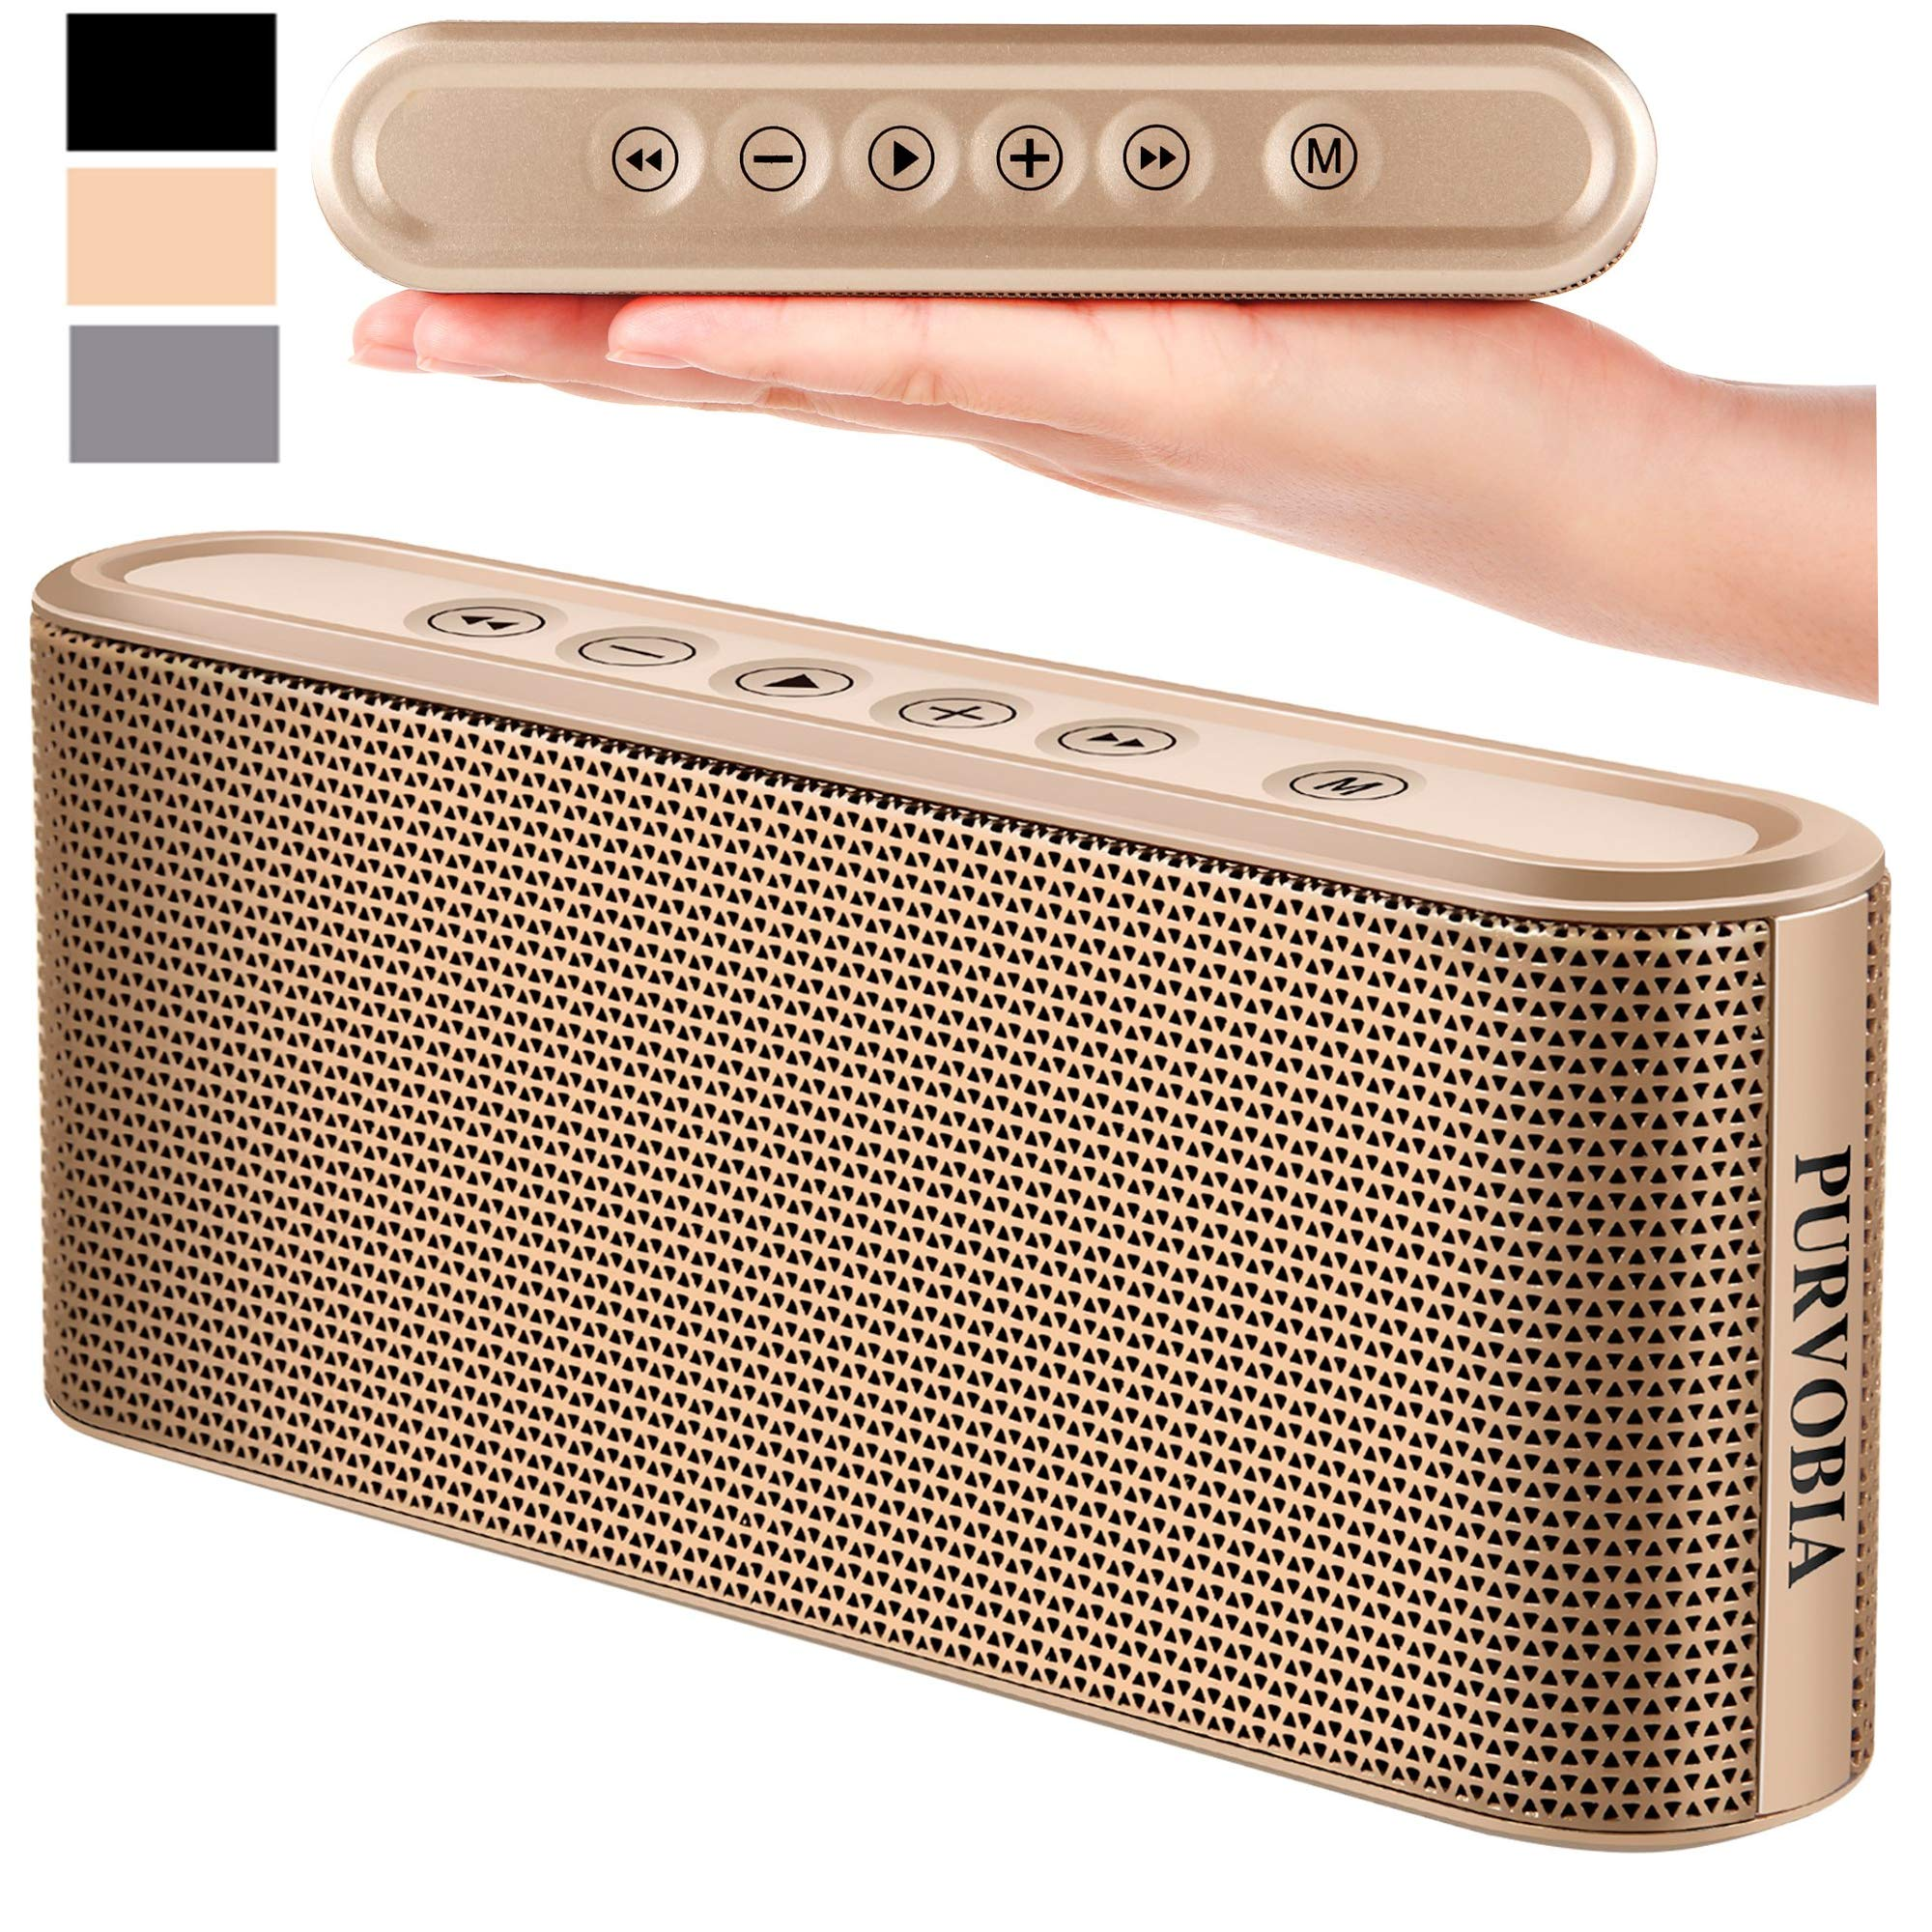 PURVOBIA Ultra Thin Slim Bluetooth Speaker - Bluetooth 5.0 Wireless Speaker Mini Portable Player Deep Bass Stereo Sound | Smart Touch Control w/ 20 Hour Playtime 5000mAh Power Bank Battery (Gold)